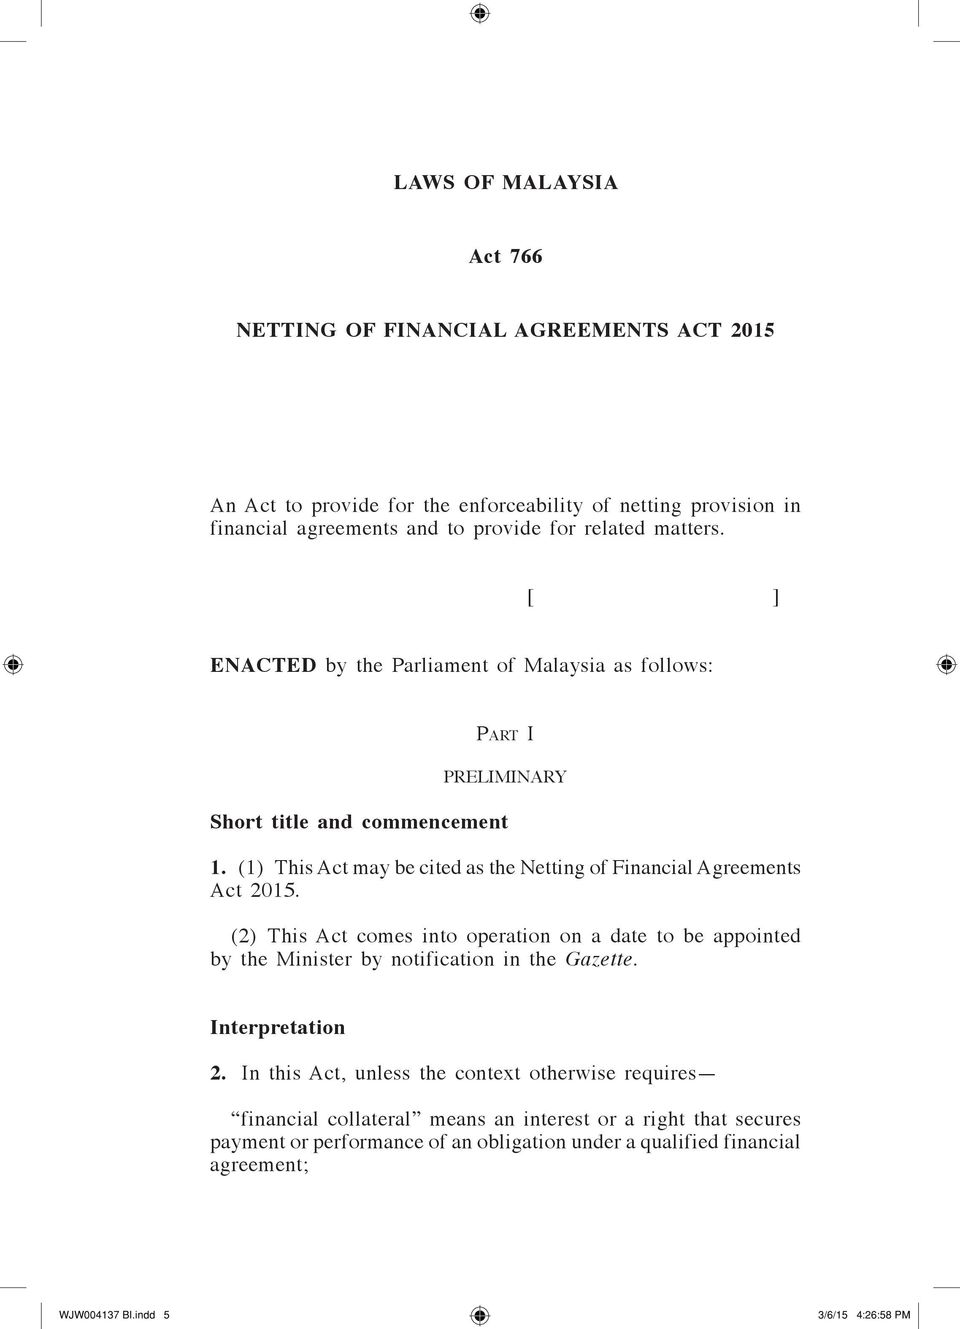 (1) This Act may be cited as the Netting of Financial Agreements Act 2015. (2) This Act comes into operation on a date to be appointed by the Minister by notification in the Gazette.